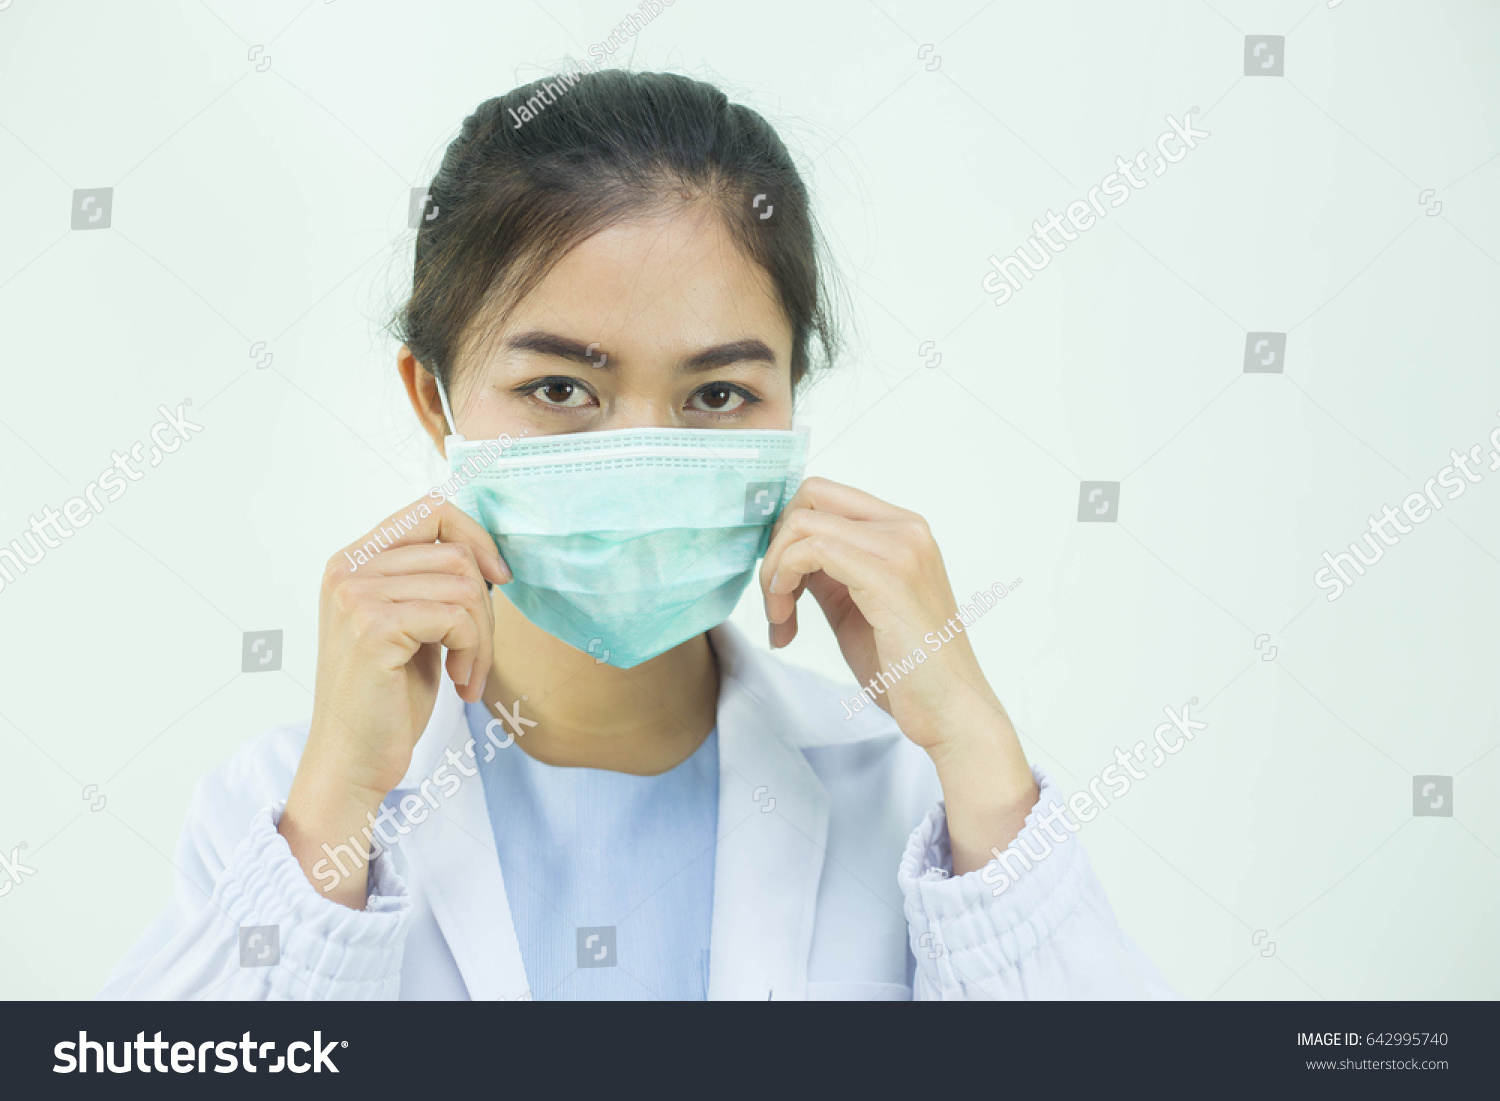 Mask Asian Surgical Wearing edit Now Photo Woman Stock Doctor